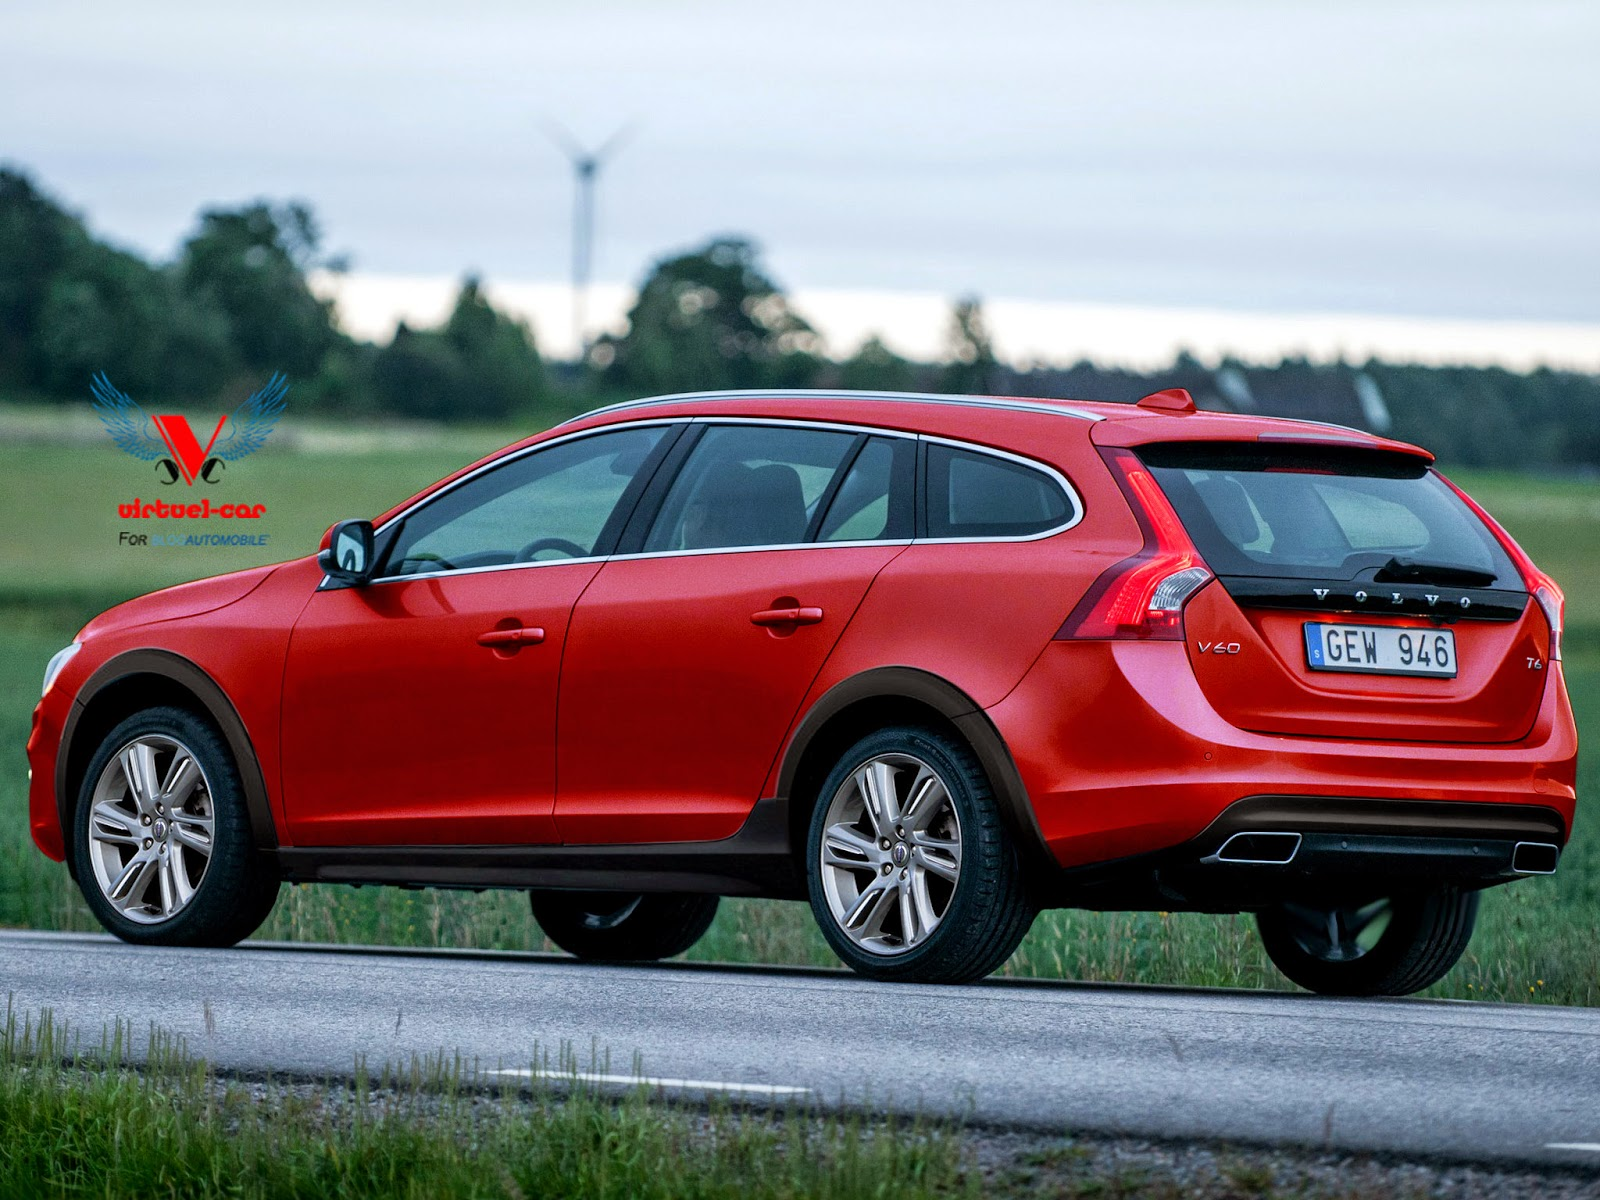 2015 Volvo V60 Cross Country #5